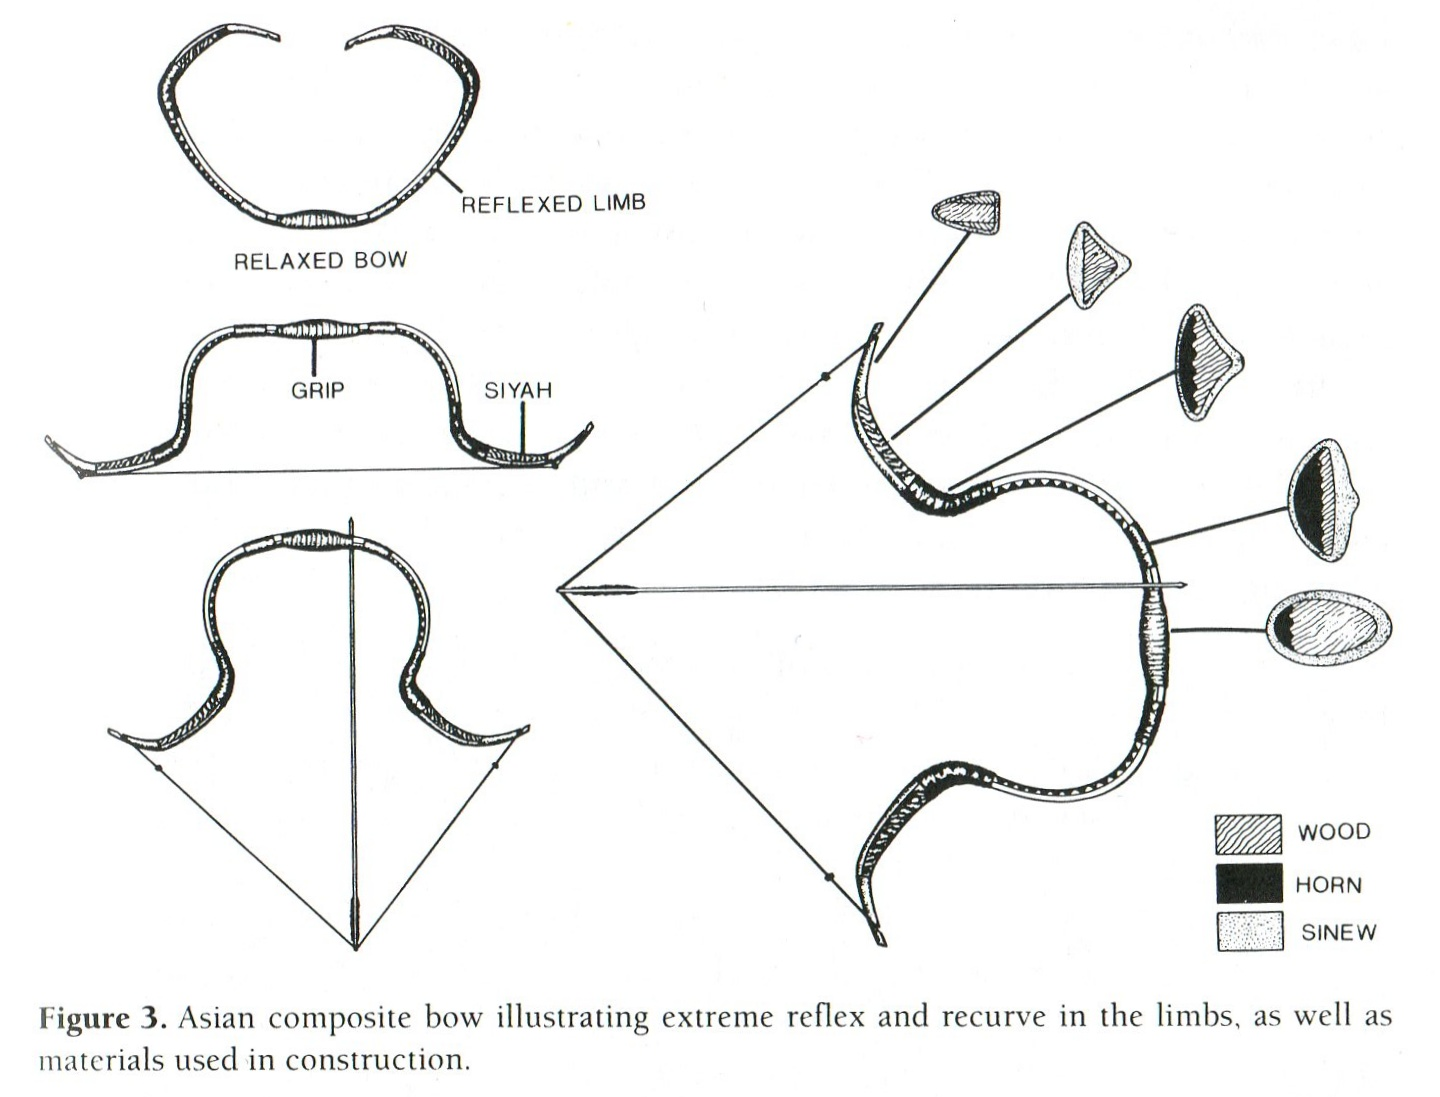 composite bows  weapon of ancient nomadic equestrian